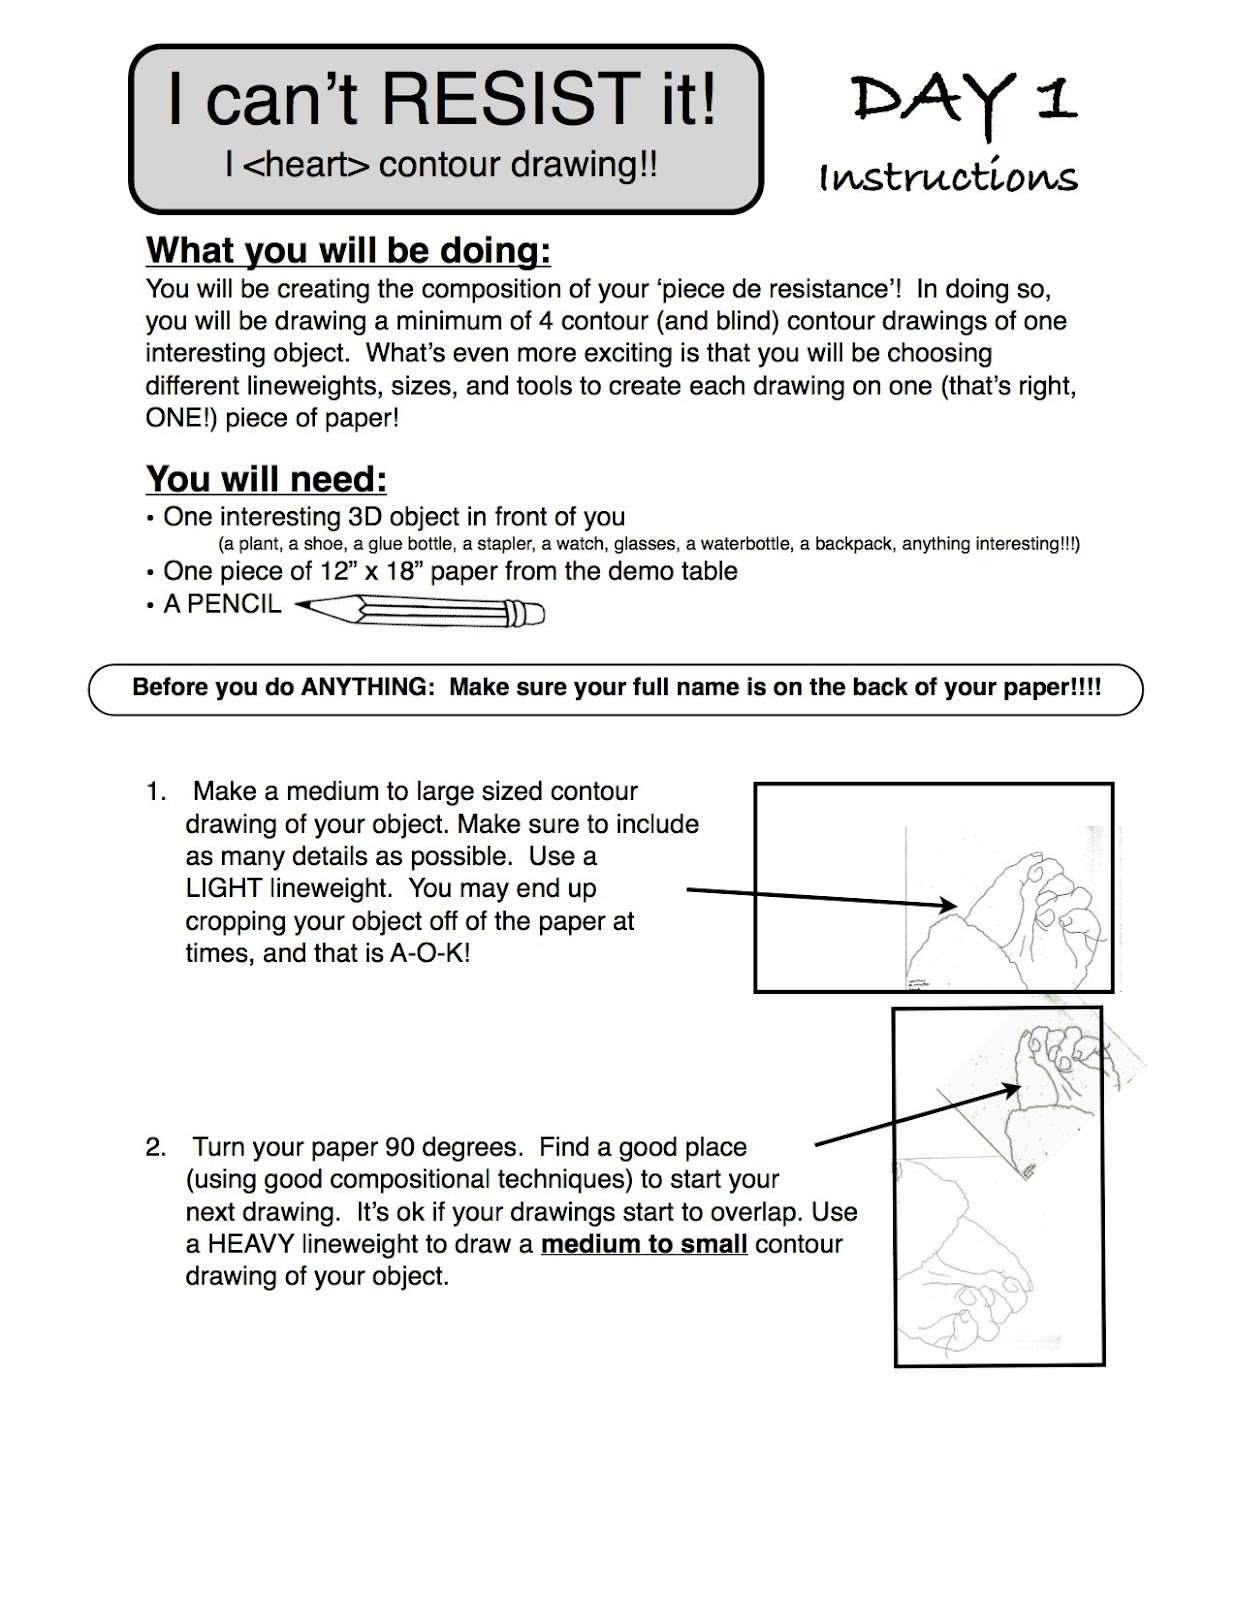 Contour Line Drawing Lesson Plan : Project art a day lesson i can t resist it contour line